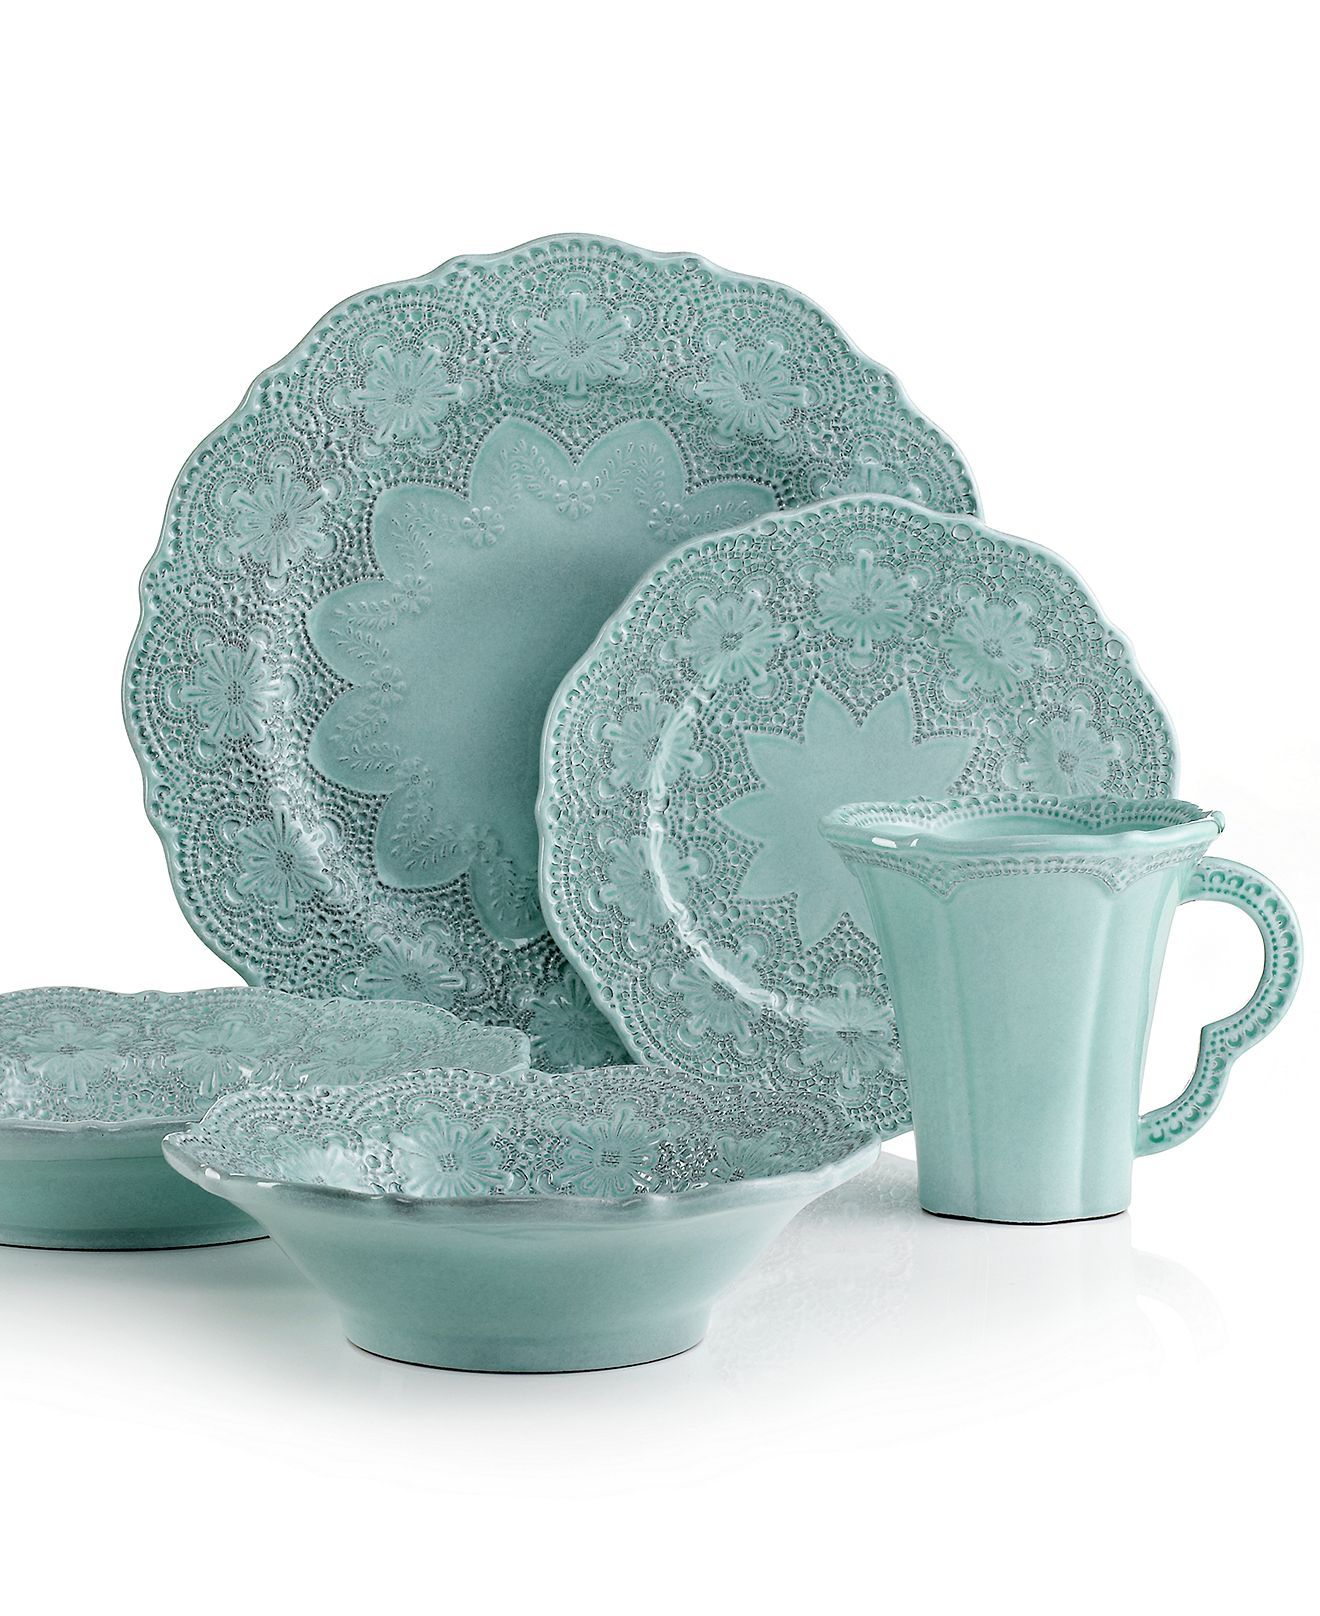 Handcrafted in the Italian tradition Merletto dinnerware from Arte Italica is intricately embellished with a  sc 1 st  Pinterest & Handcrafted in the Italian tradition Merletto dinnerware from Arte ...